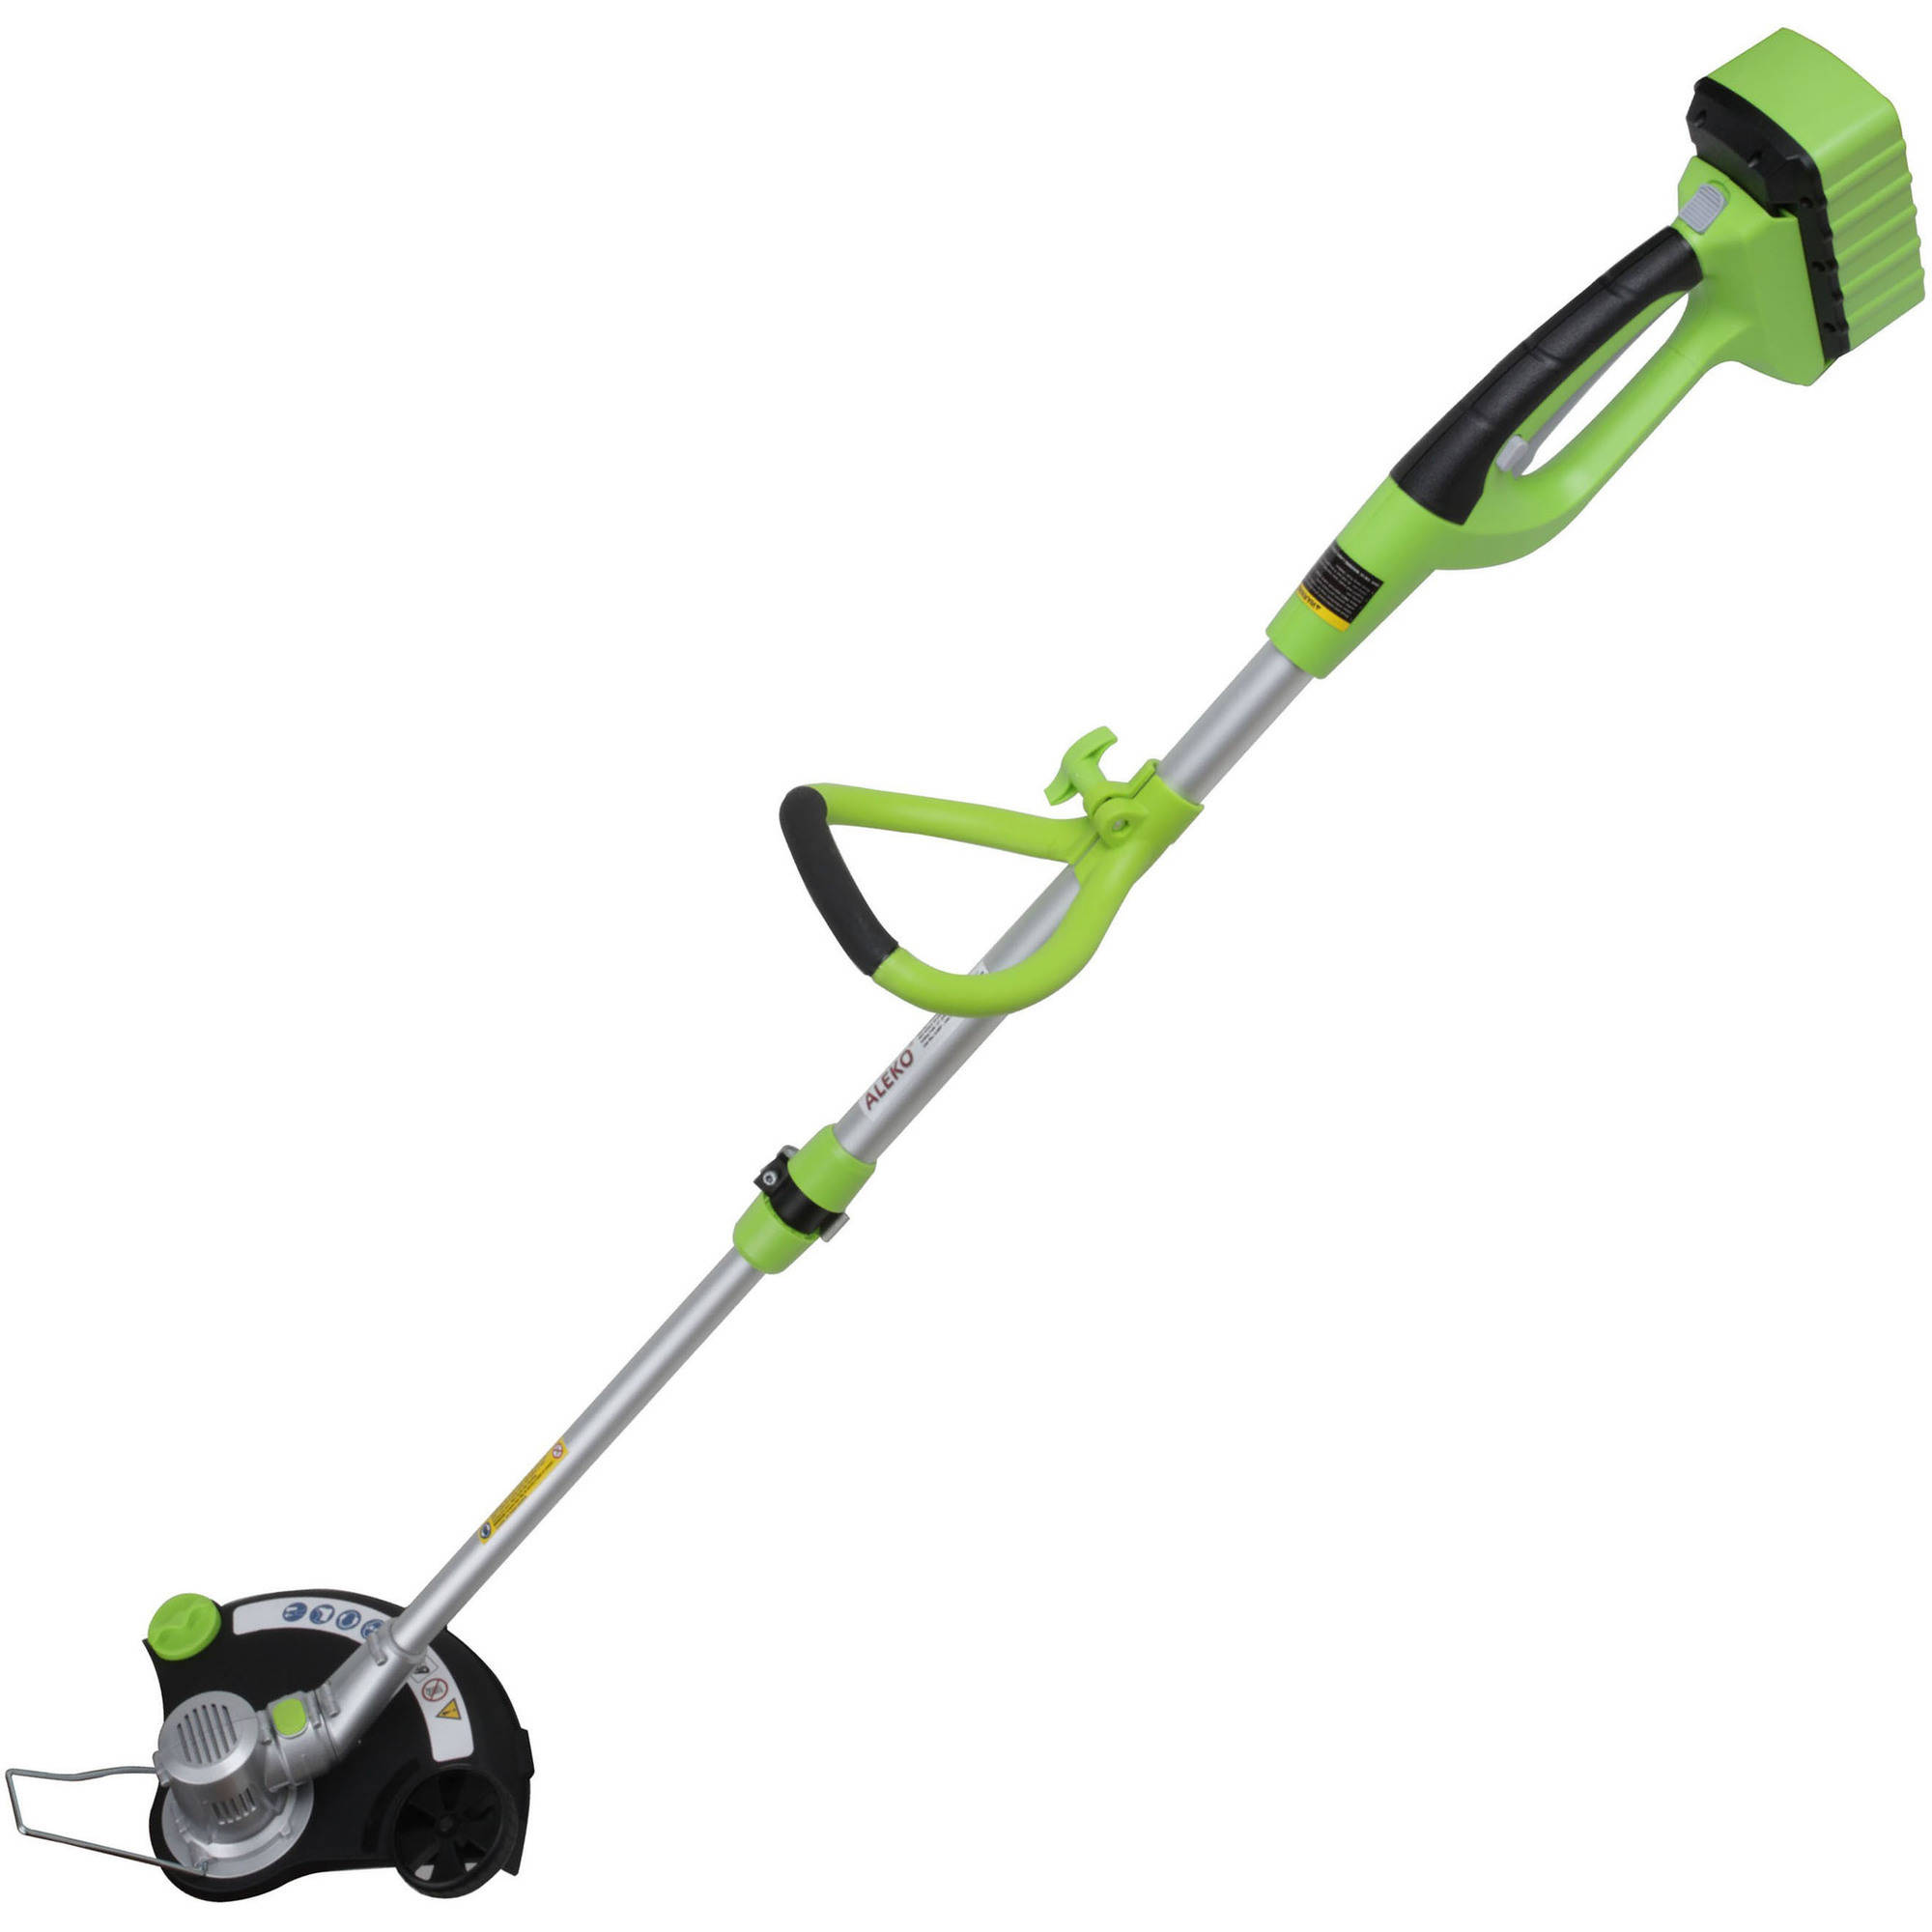 Cordless 36V String Grass Trimmer Weedeater Weedwacker  Walmart.com